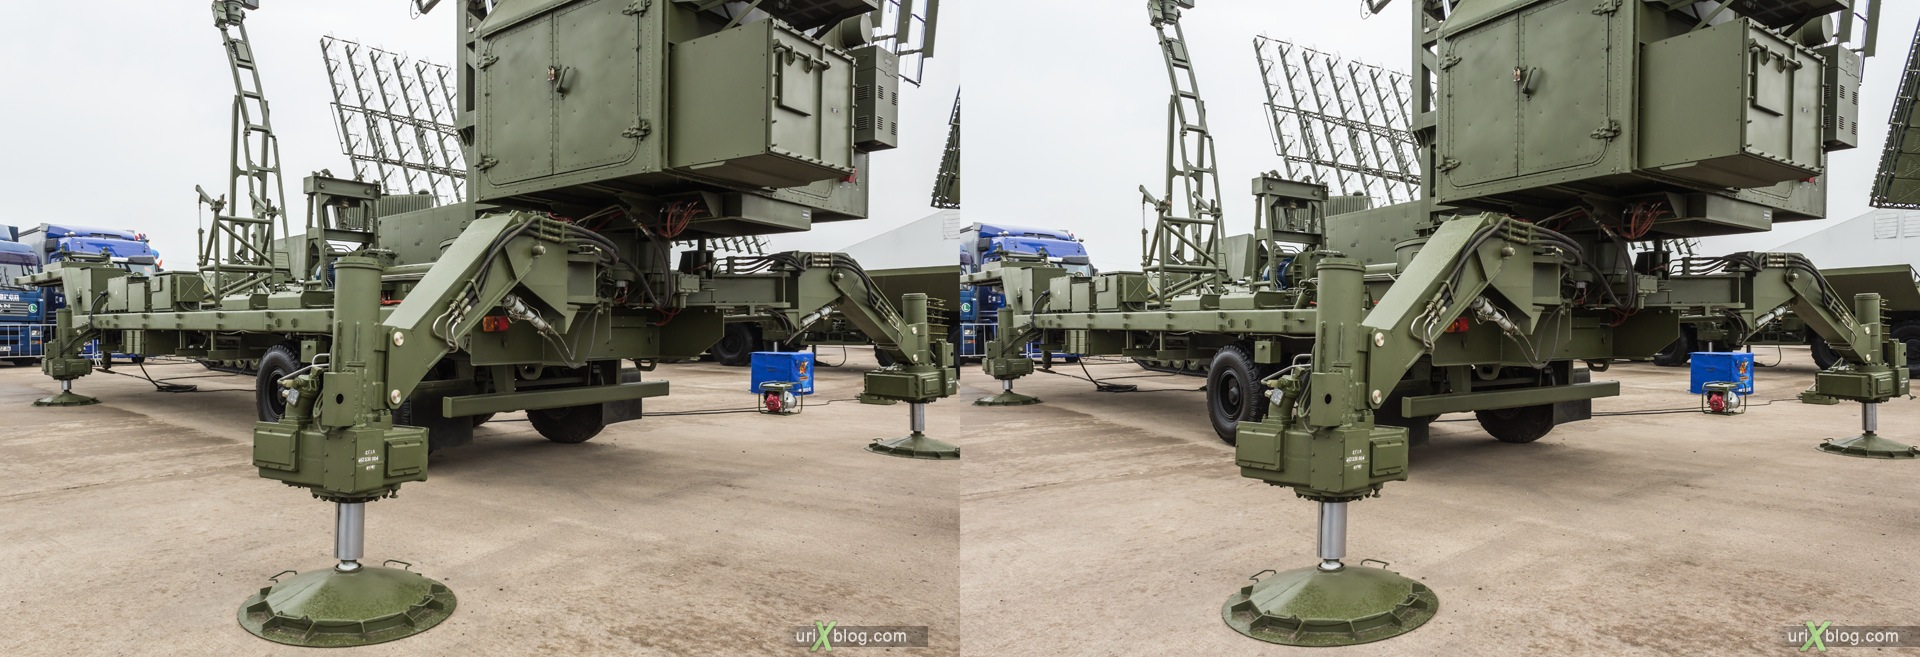 2013, MAKS, International Aviation and Space Salon, Russia, Ramenskoye airfield, 3D, stereo pair, cross-eyed, crossview, cross view stereo pair, stereoscopic